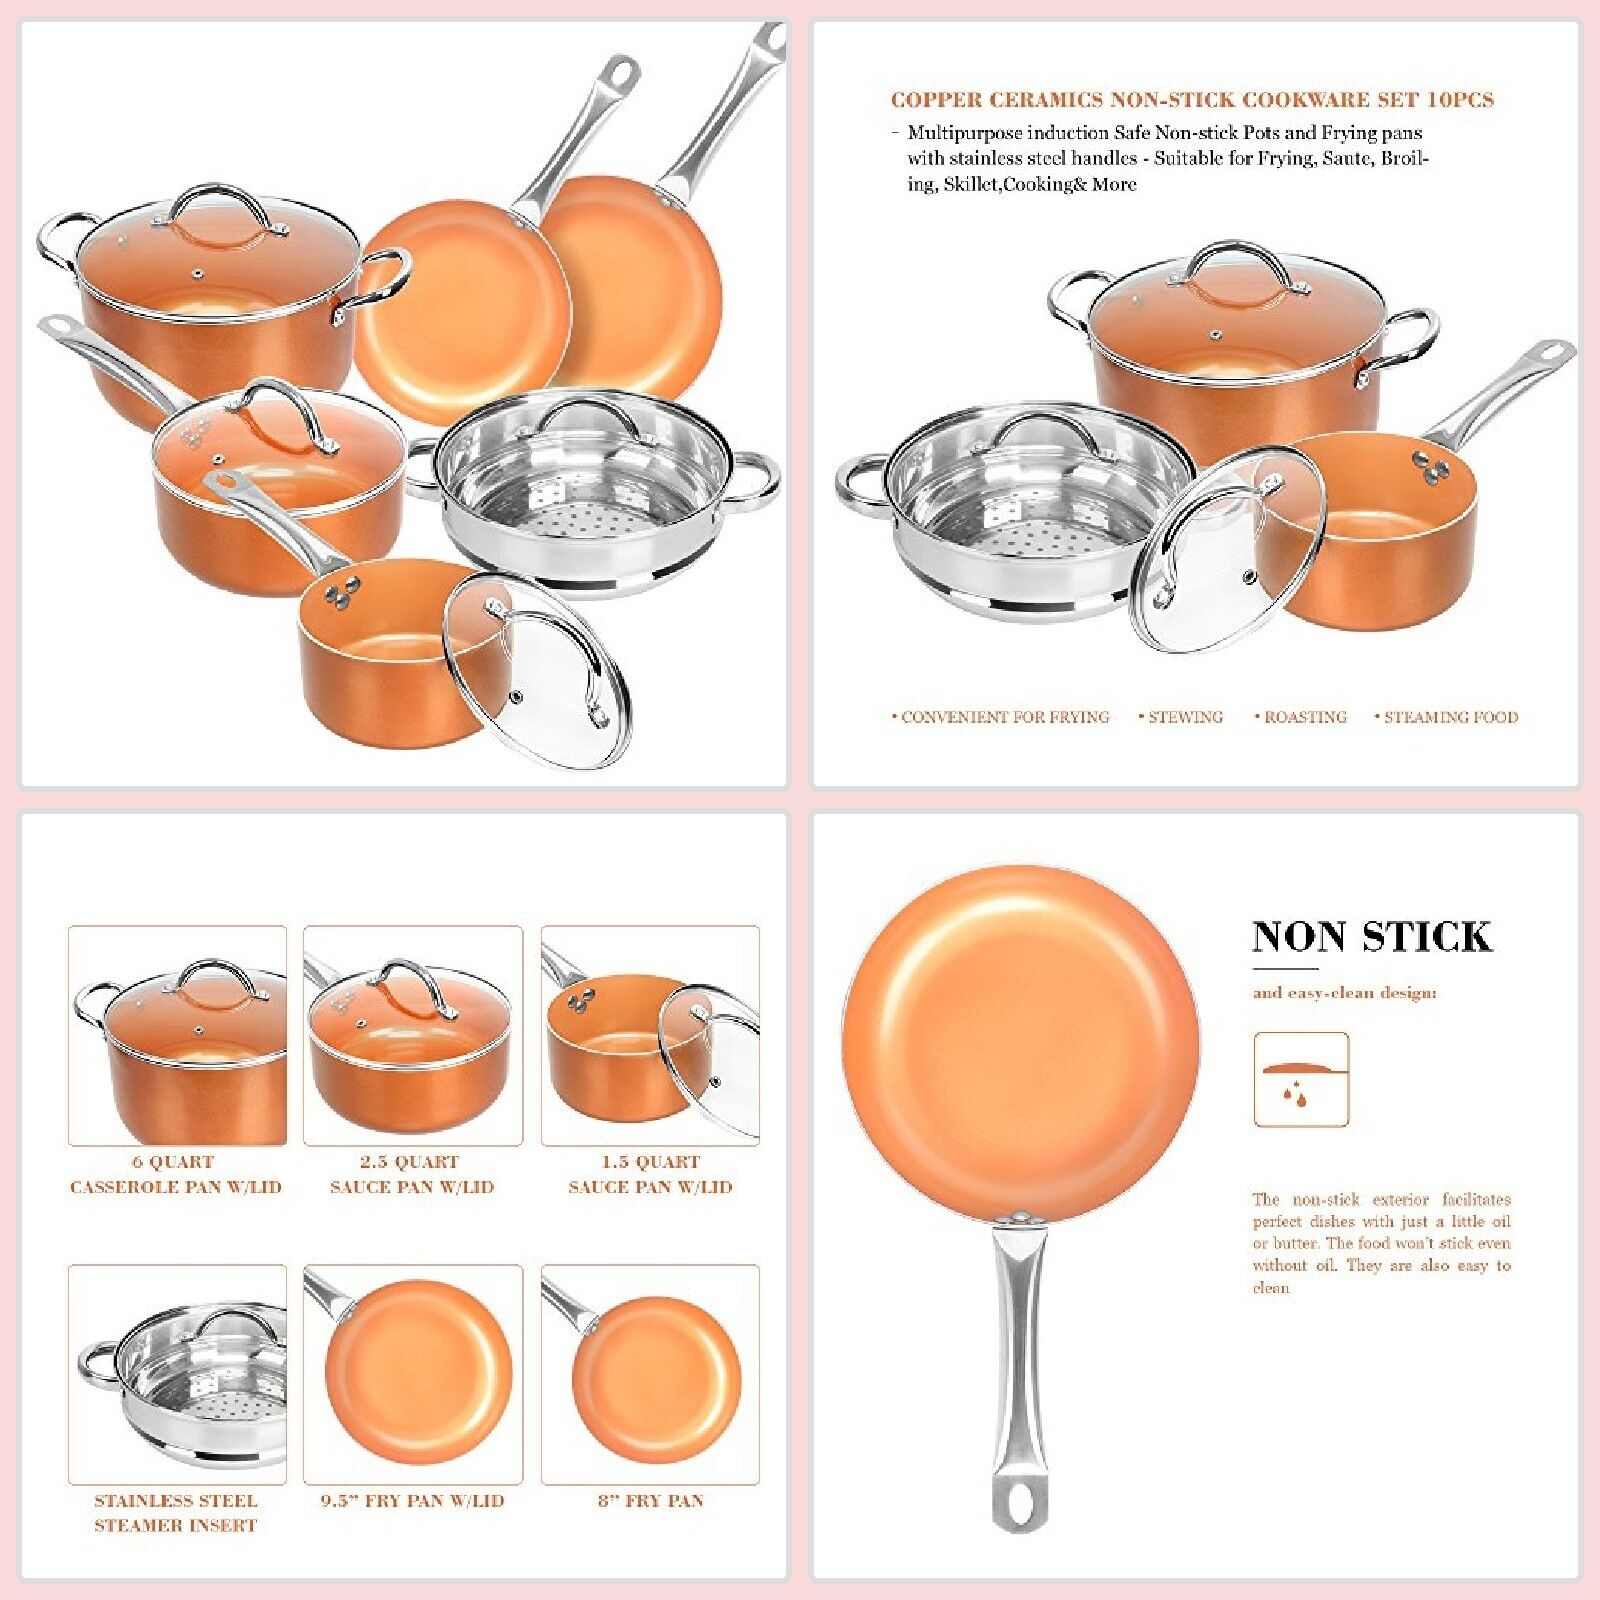 Cookware Set Pots And Pans Nonstick Stainless Steel Copper o